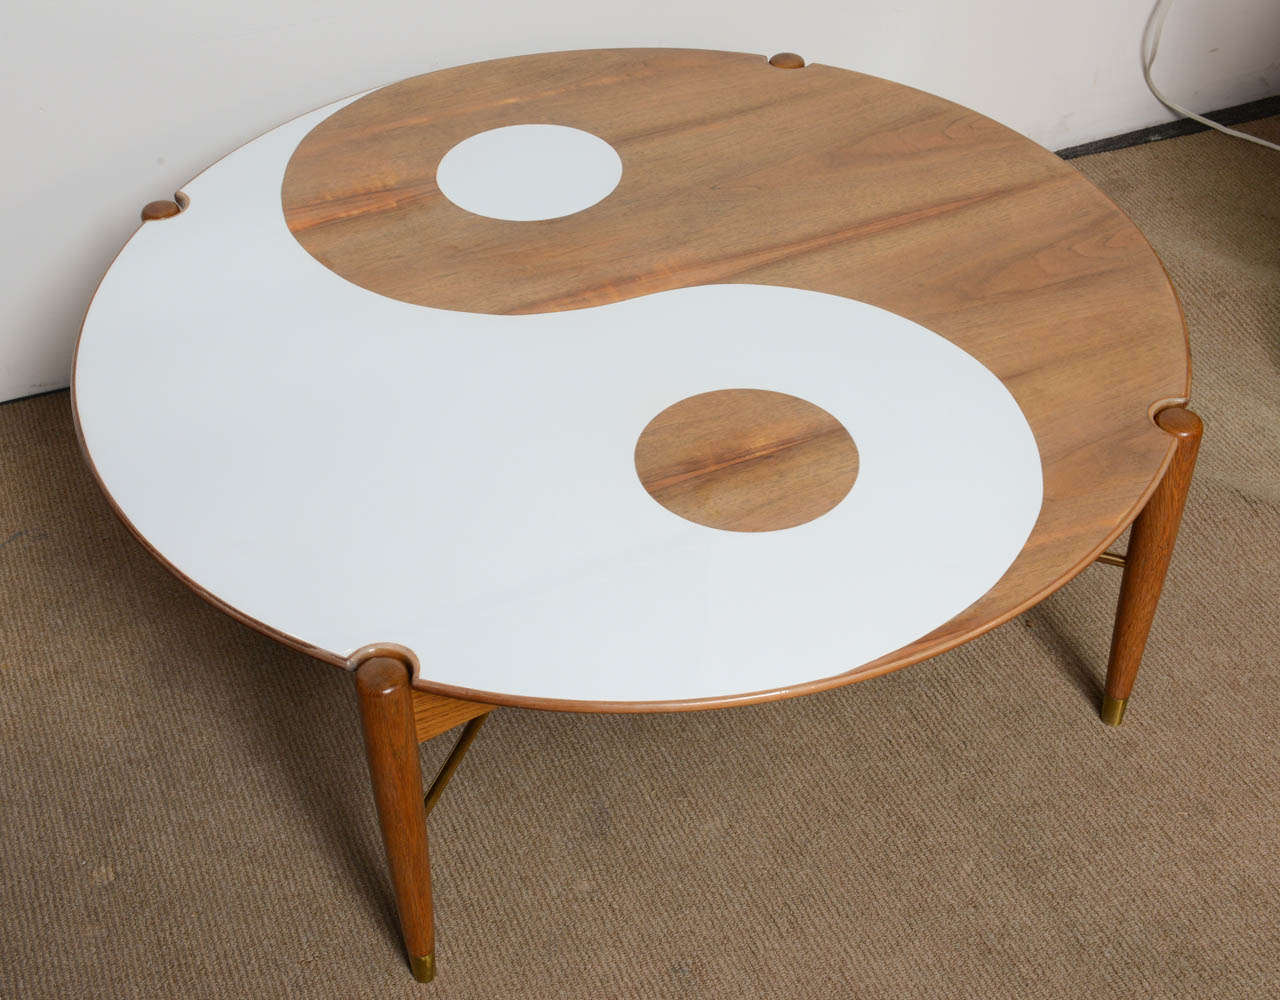 the creative yin yang coffee table